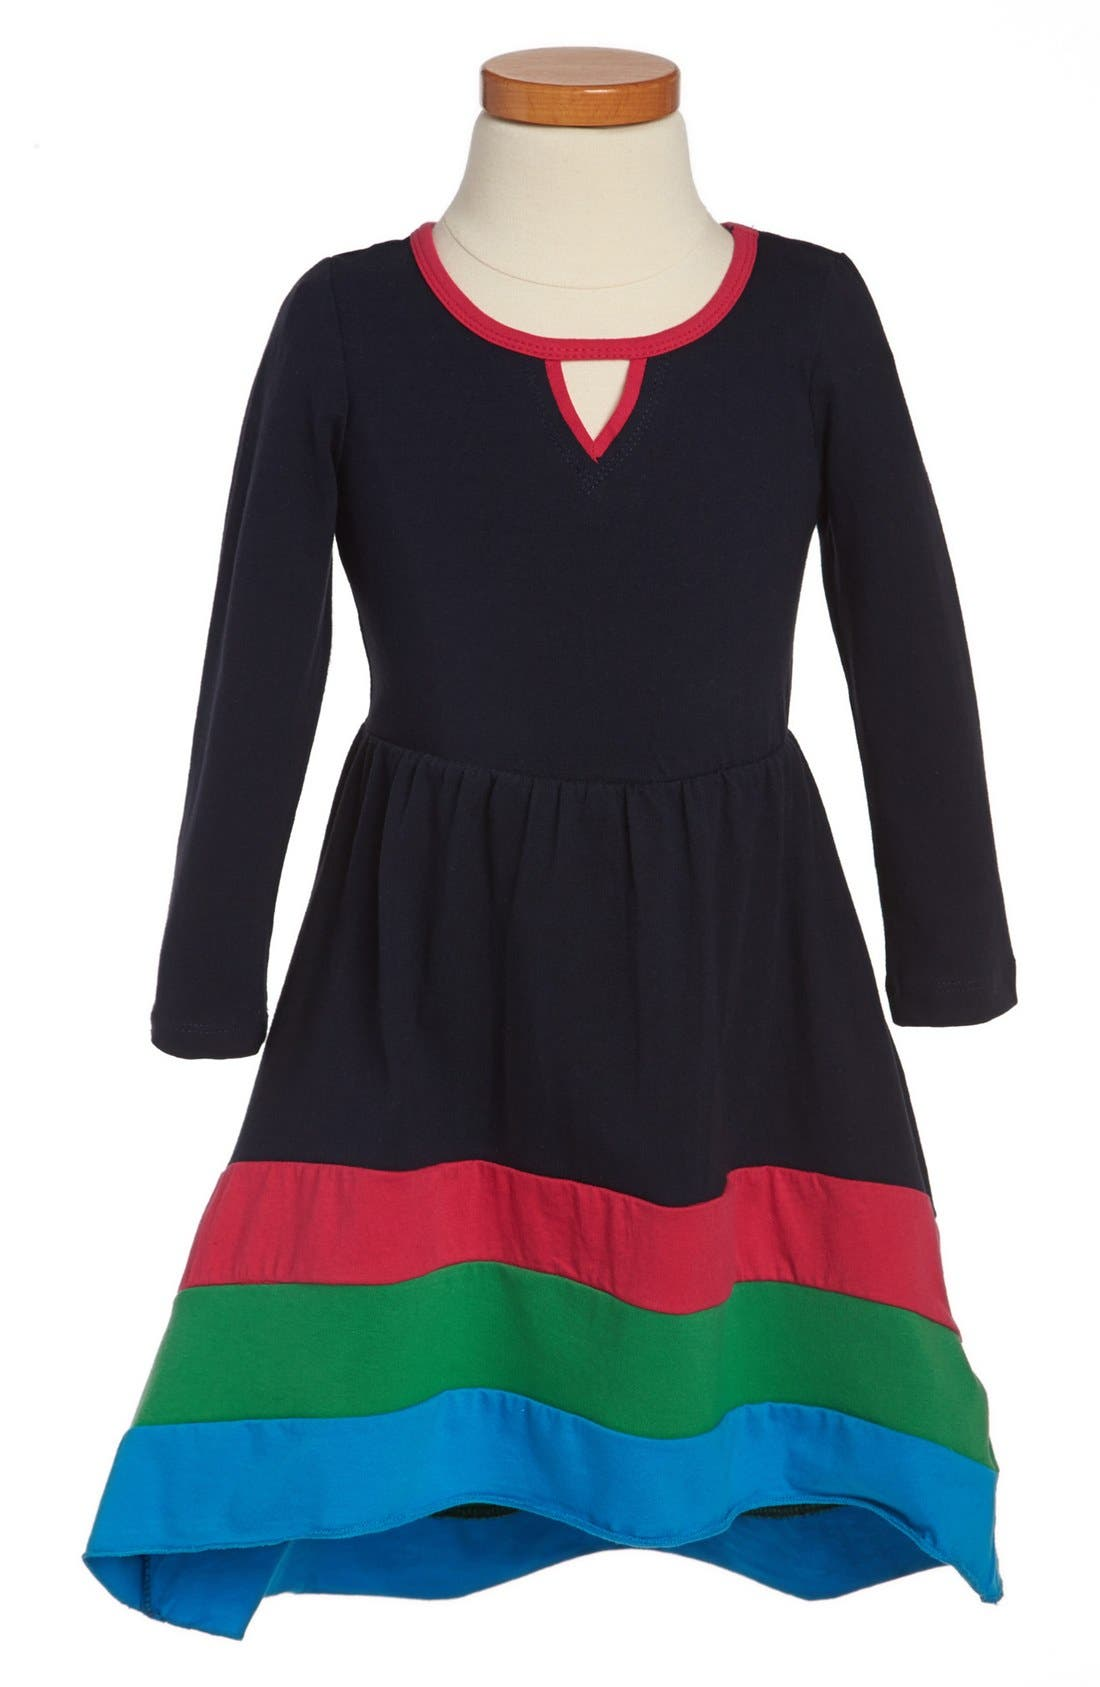 Main Image - Ella and Lulu Colorblock Dress (Toddler Girls)